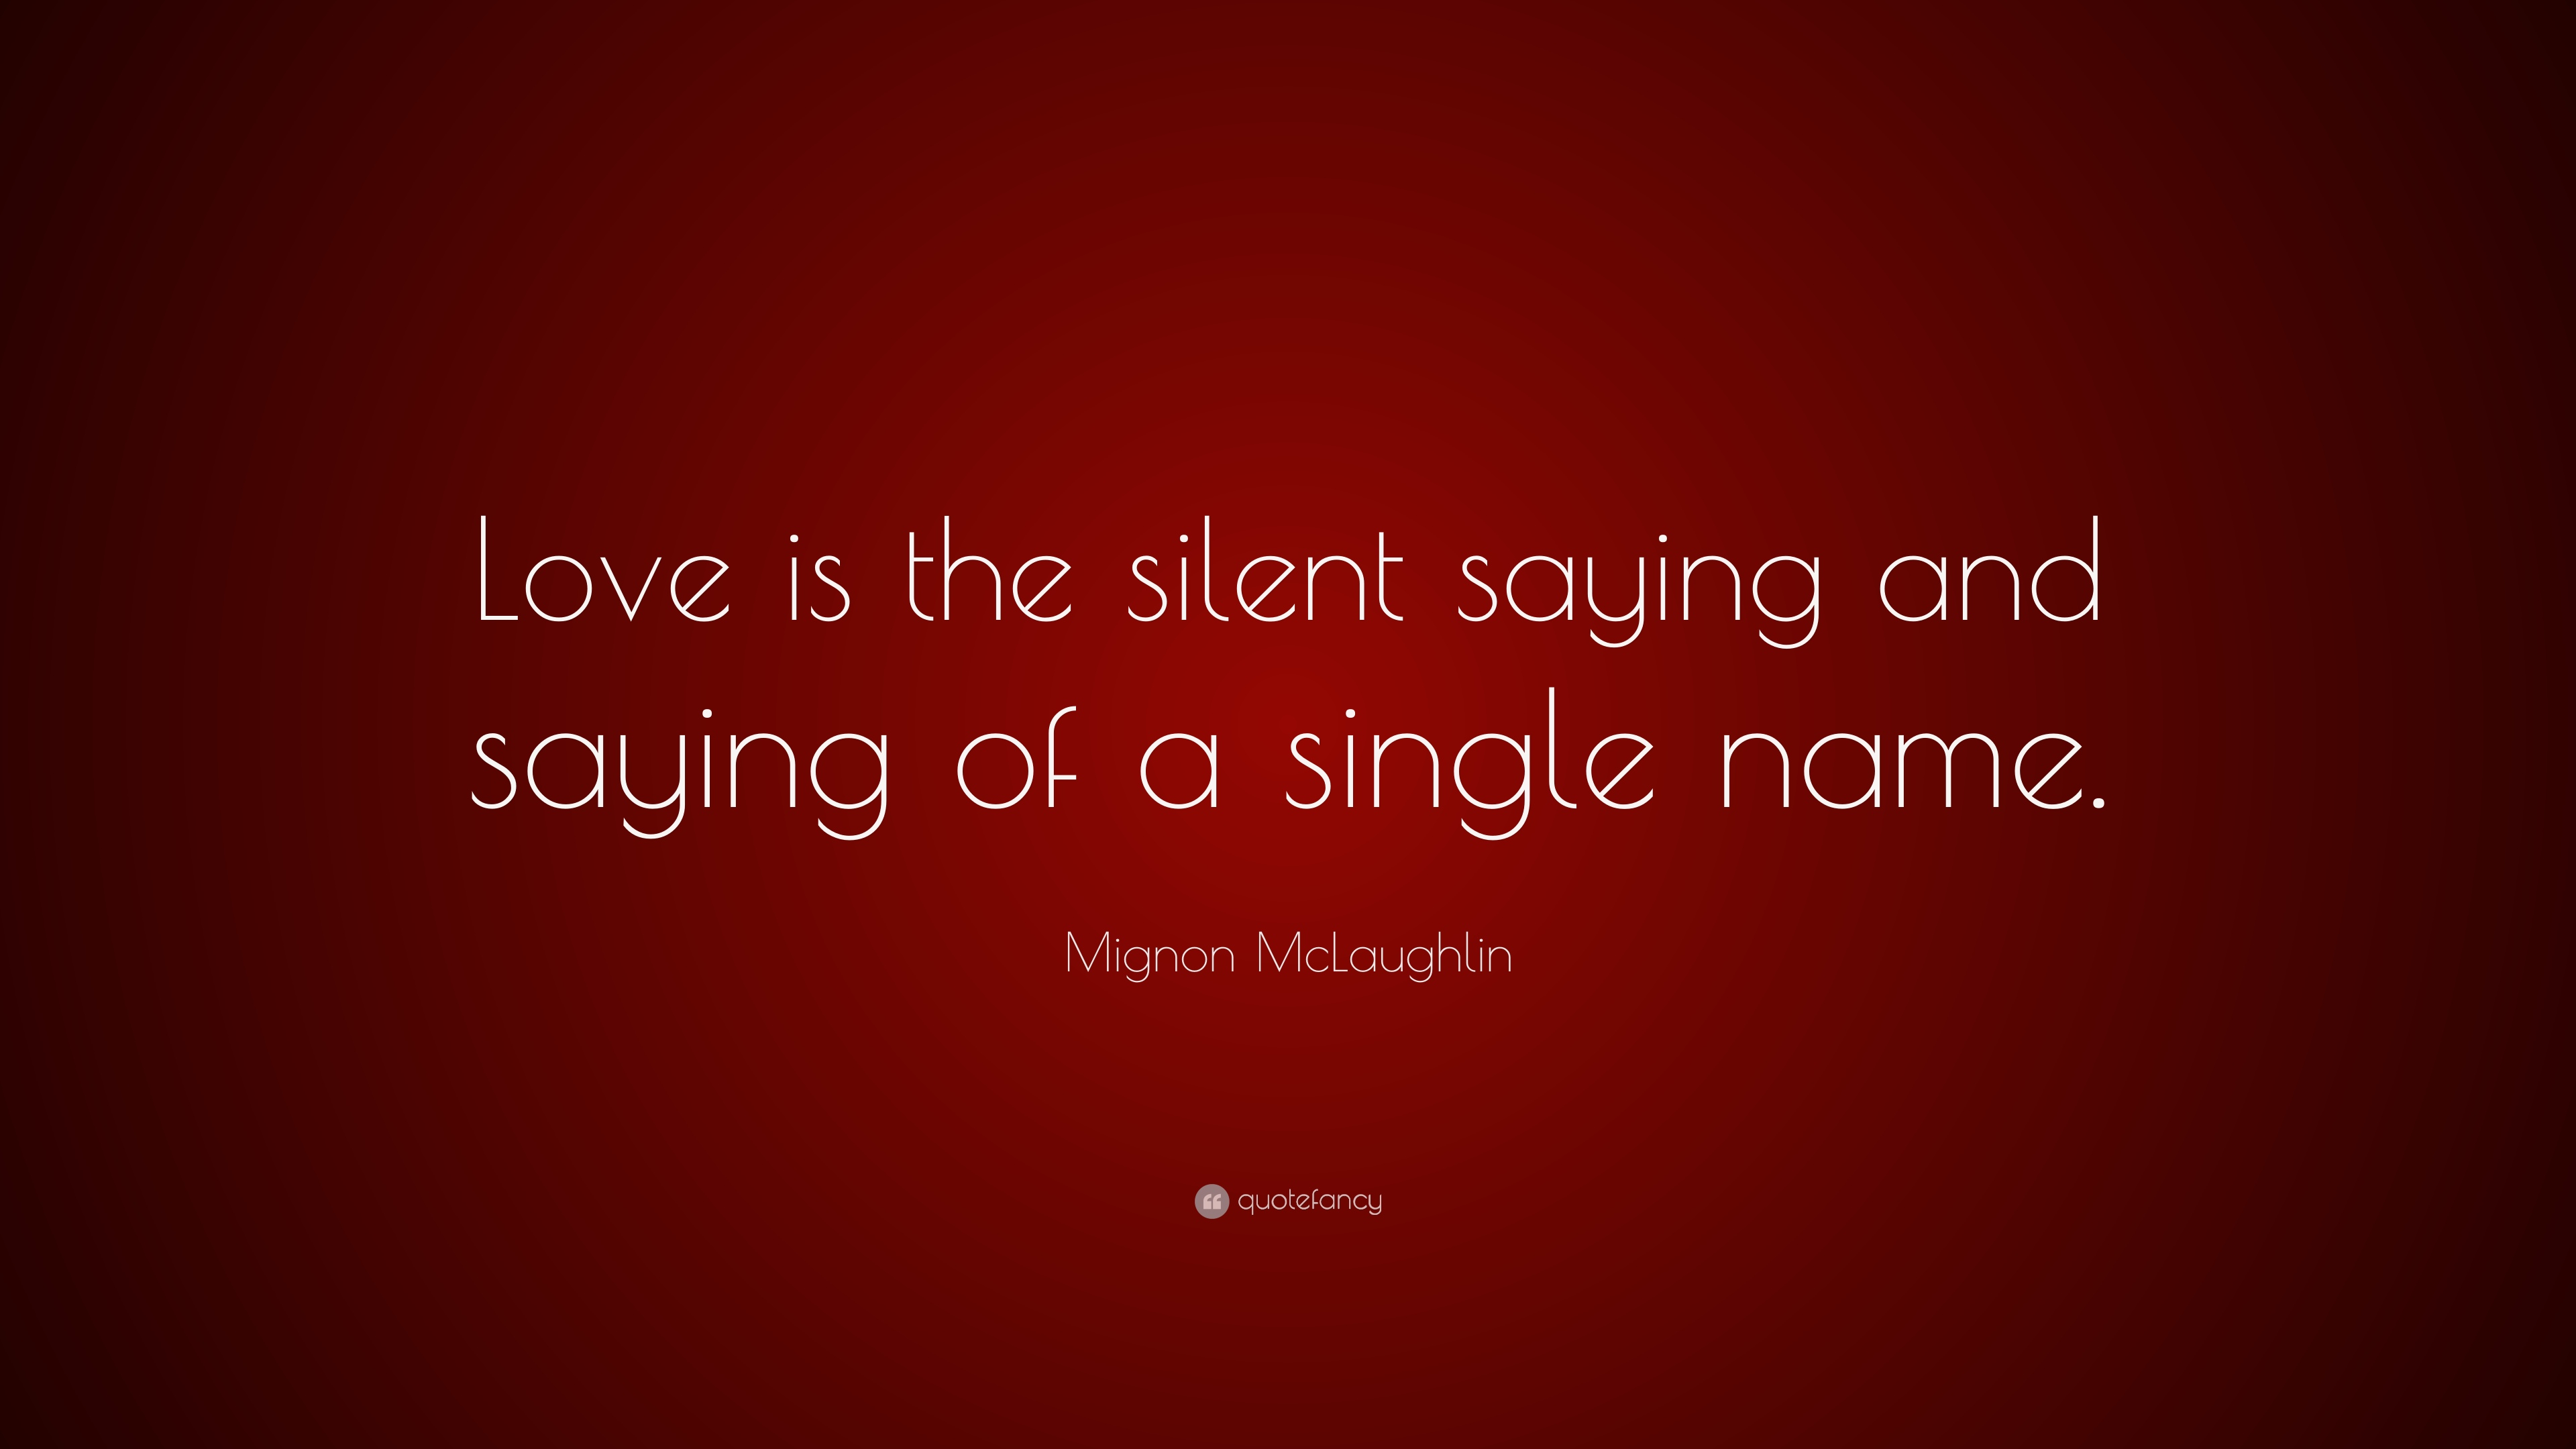 Single On Valentines Day Quotes Valentine's Day Quotes 40 Wallpapers  Quotefancy